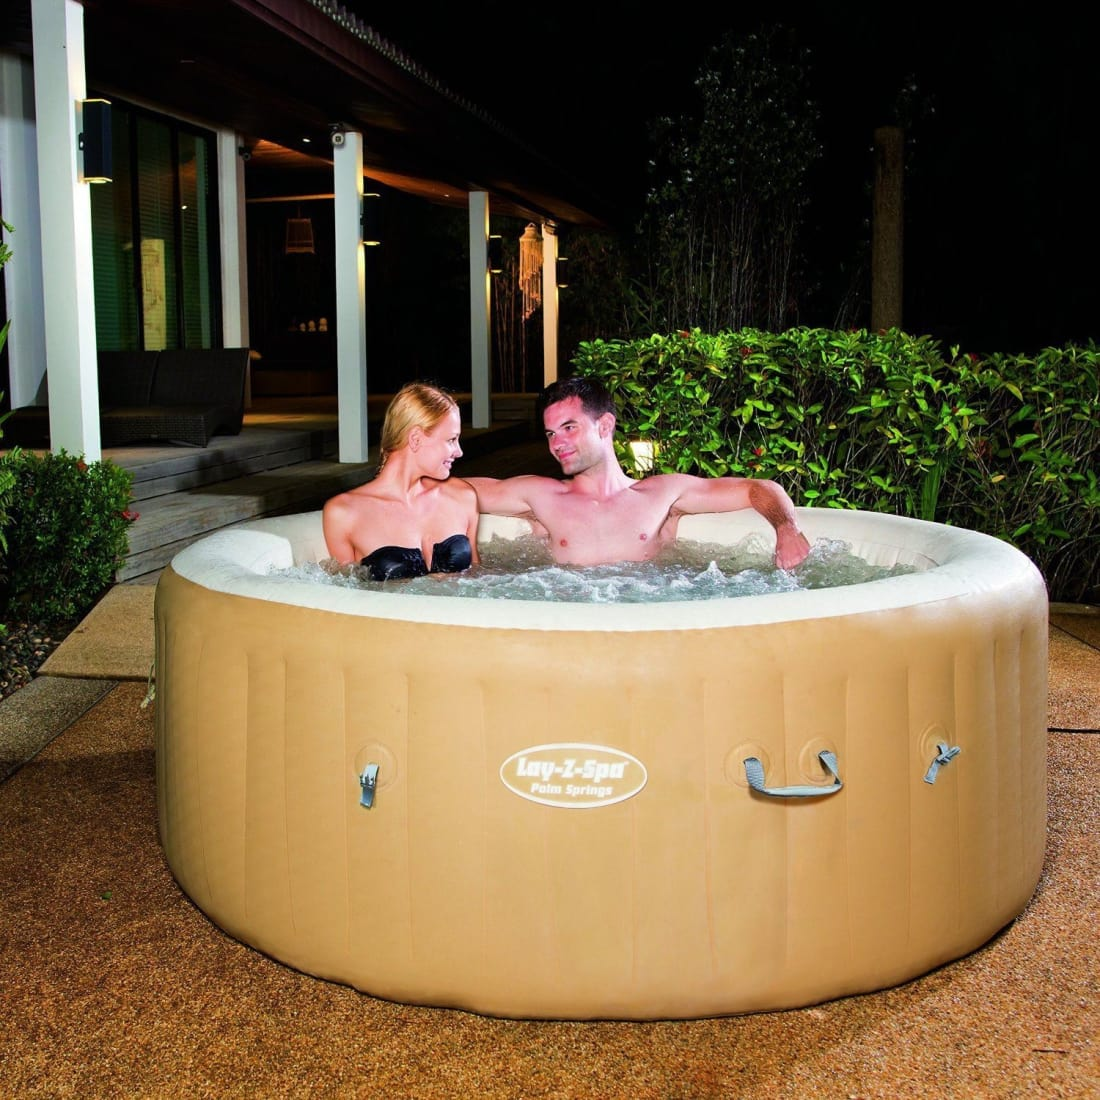 Hot Tubs For Sale - Hot Tub Hire in West Yorkshire: Supplier of ...